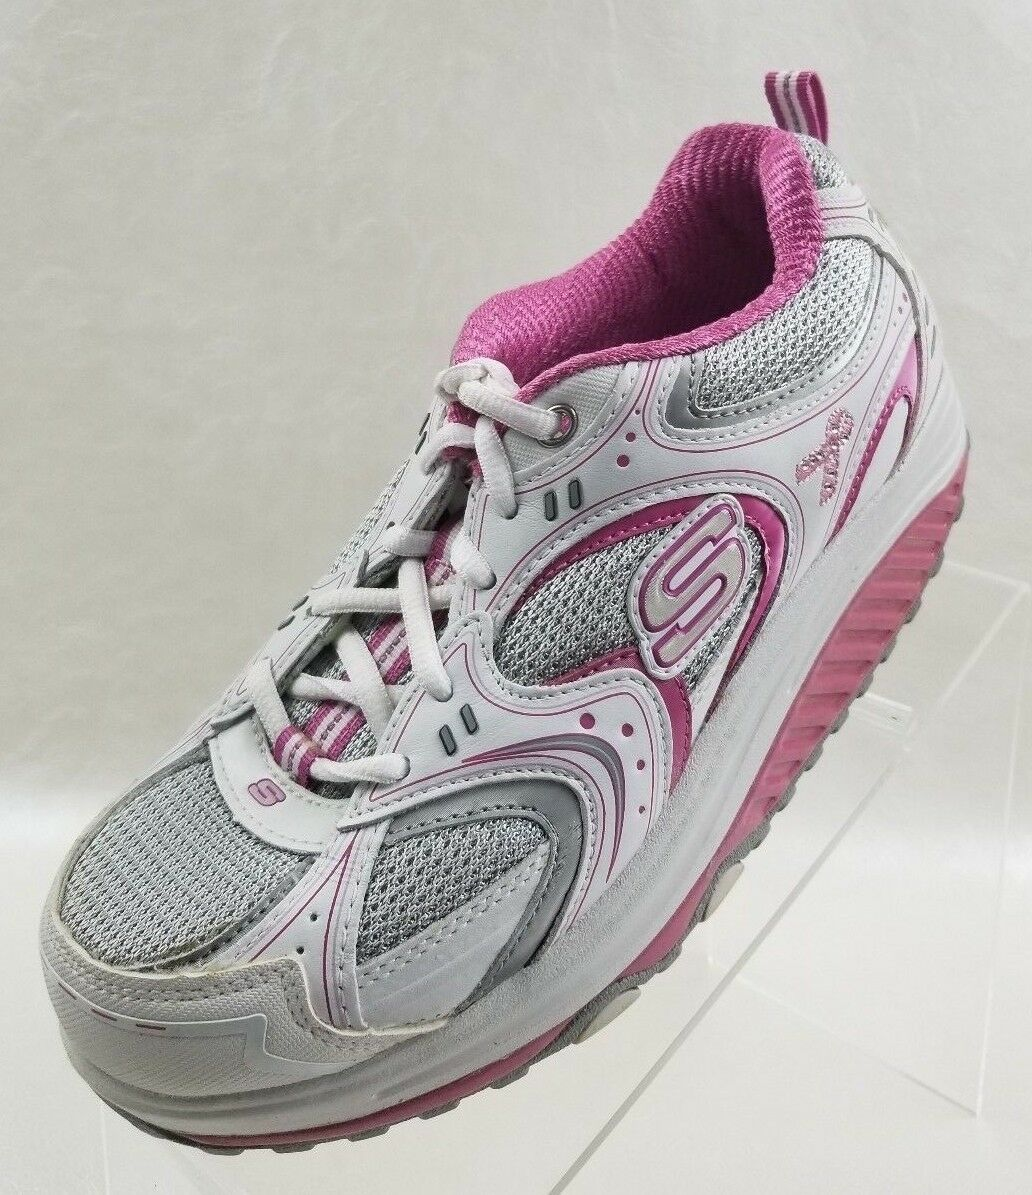 Skechers Shape Ups 12309 Womens White Pink Fitness Sneakers Size 7